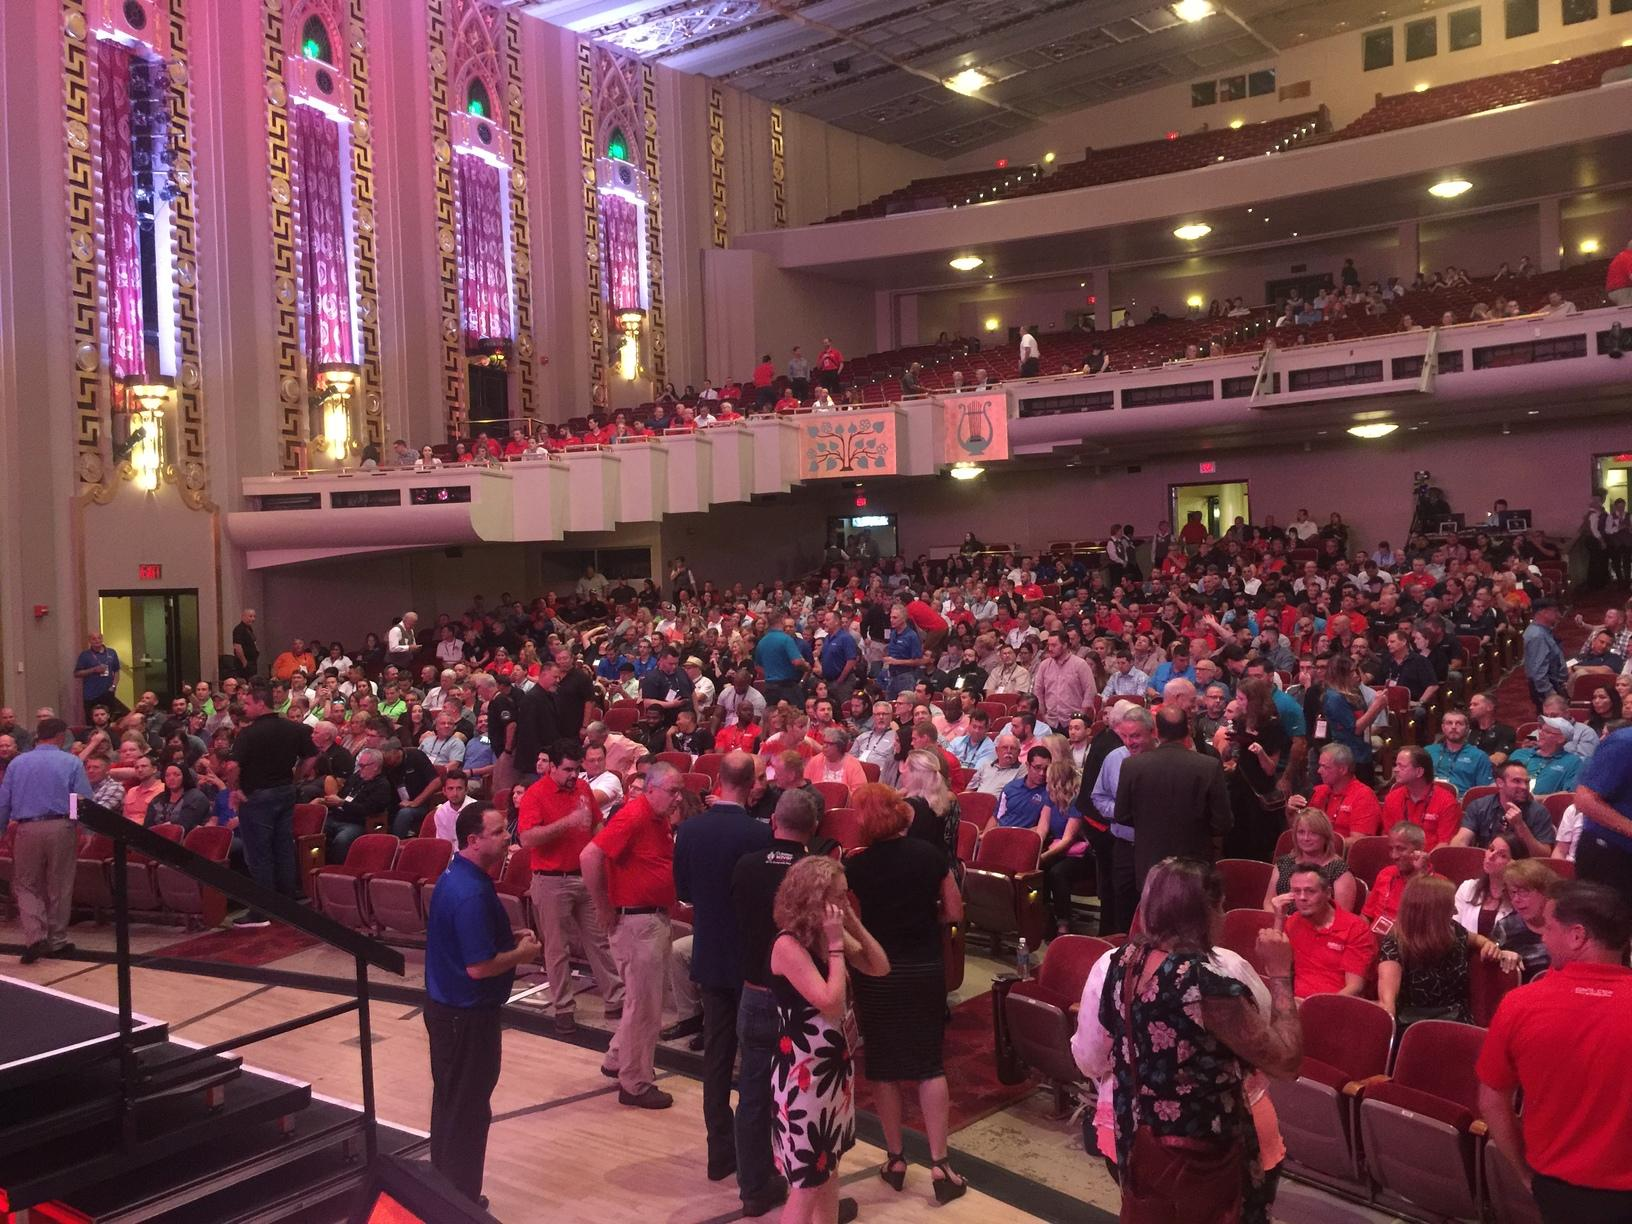 Sneak peak of the crowd at Bushnell Theatre